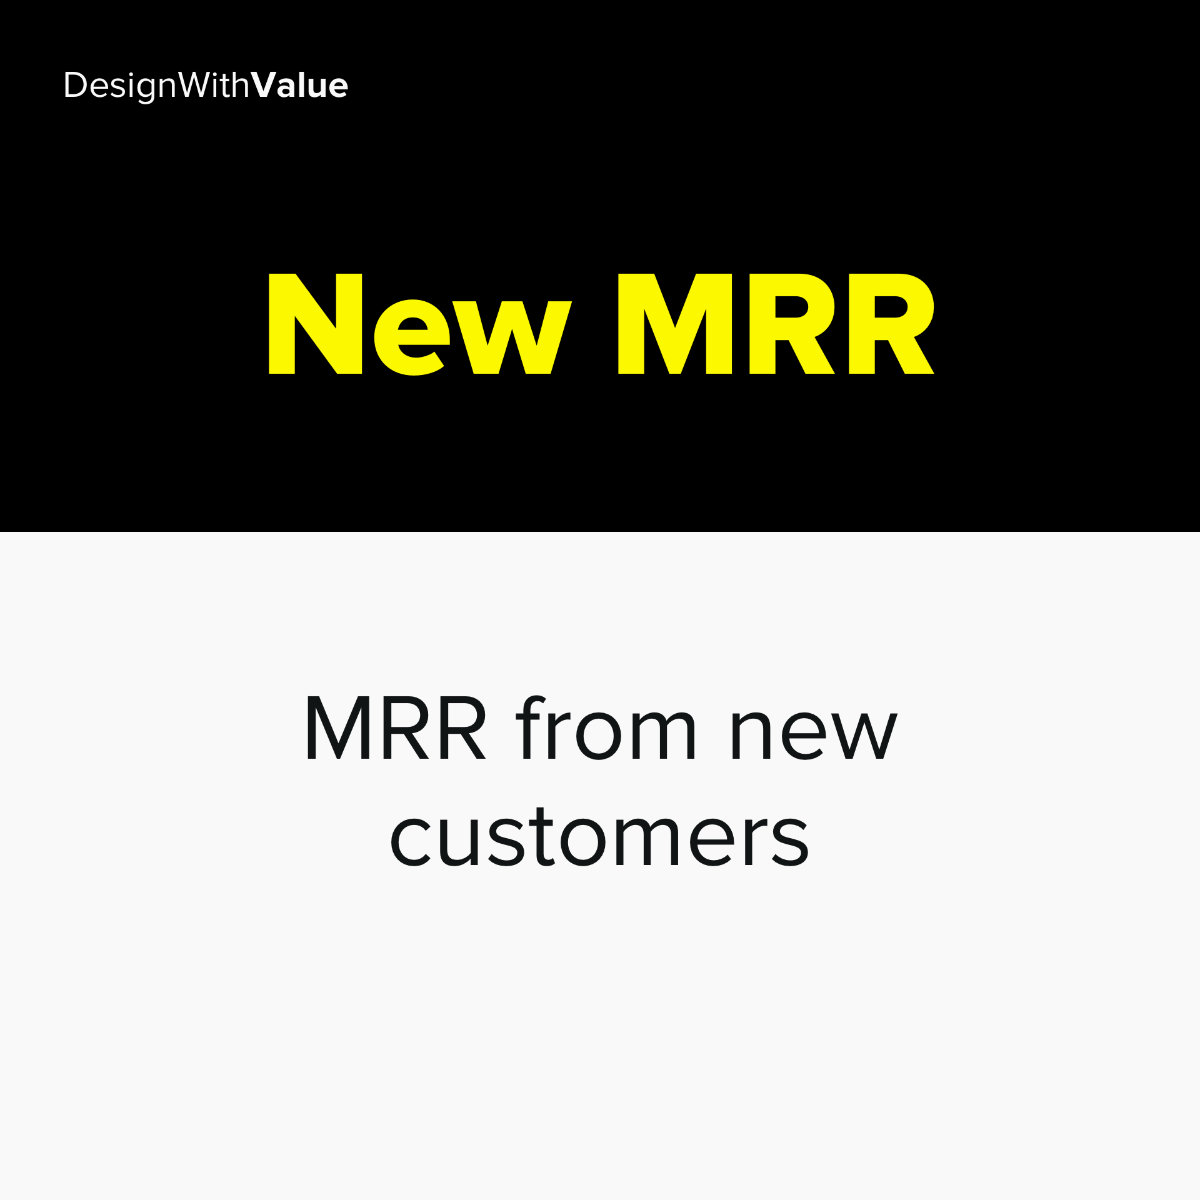 New MRR = MRR from new customers